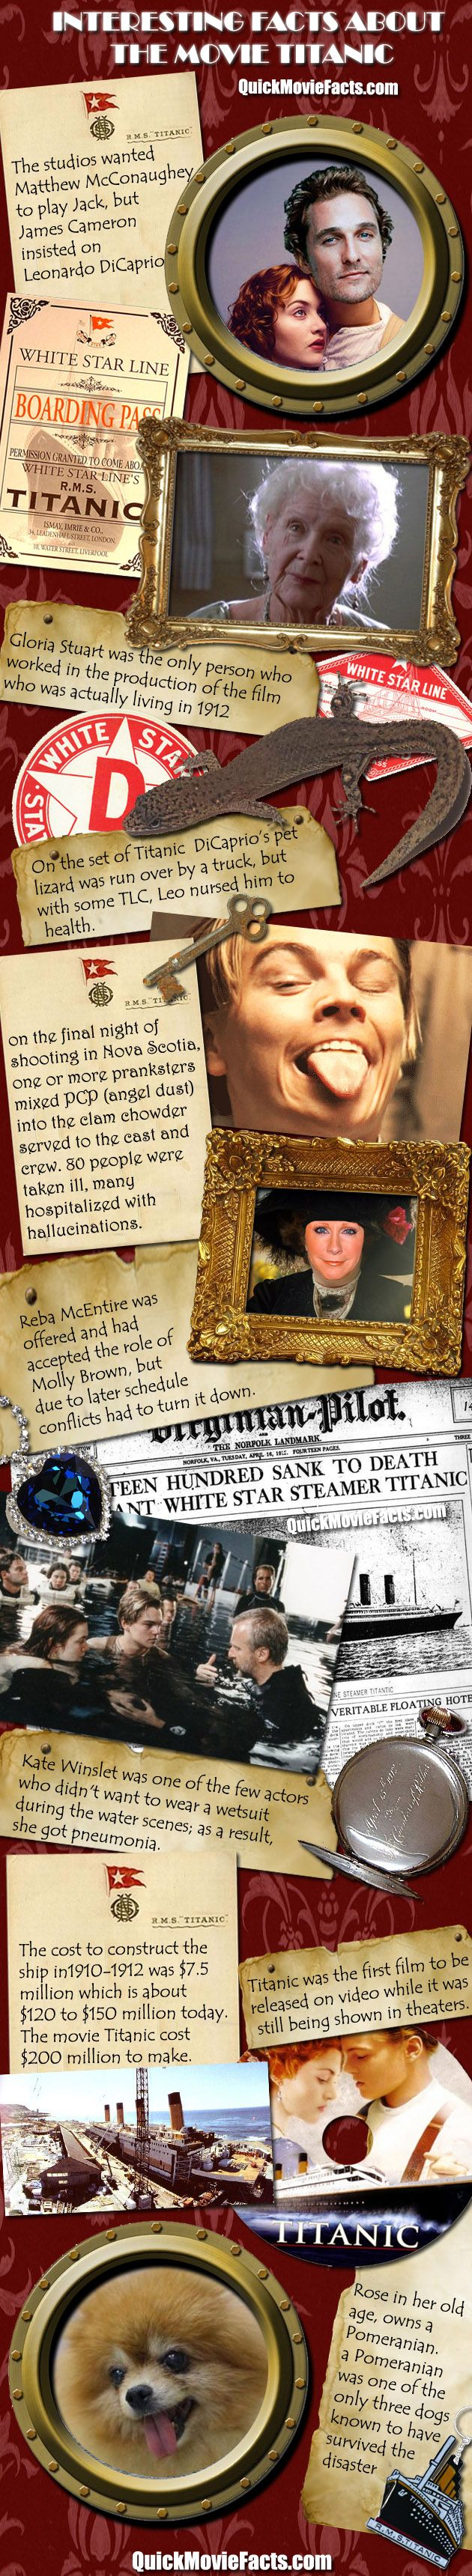 Titanic Fun Facts